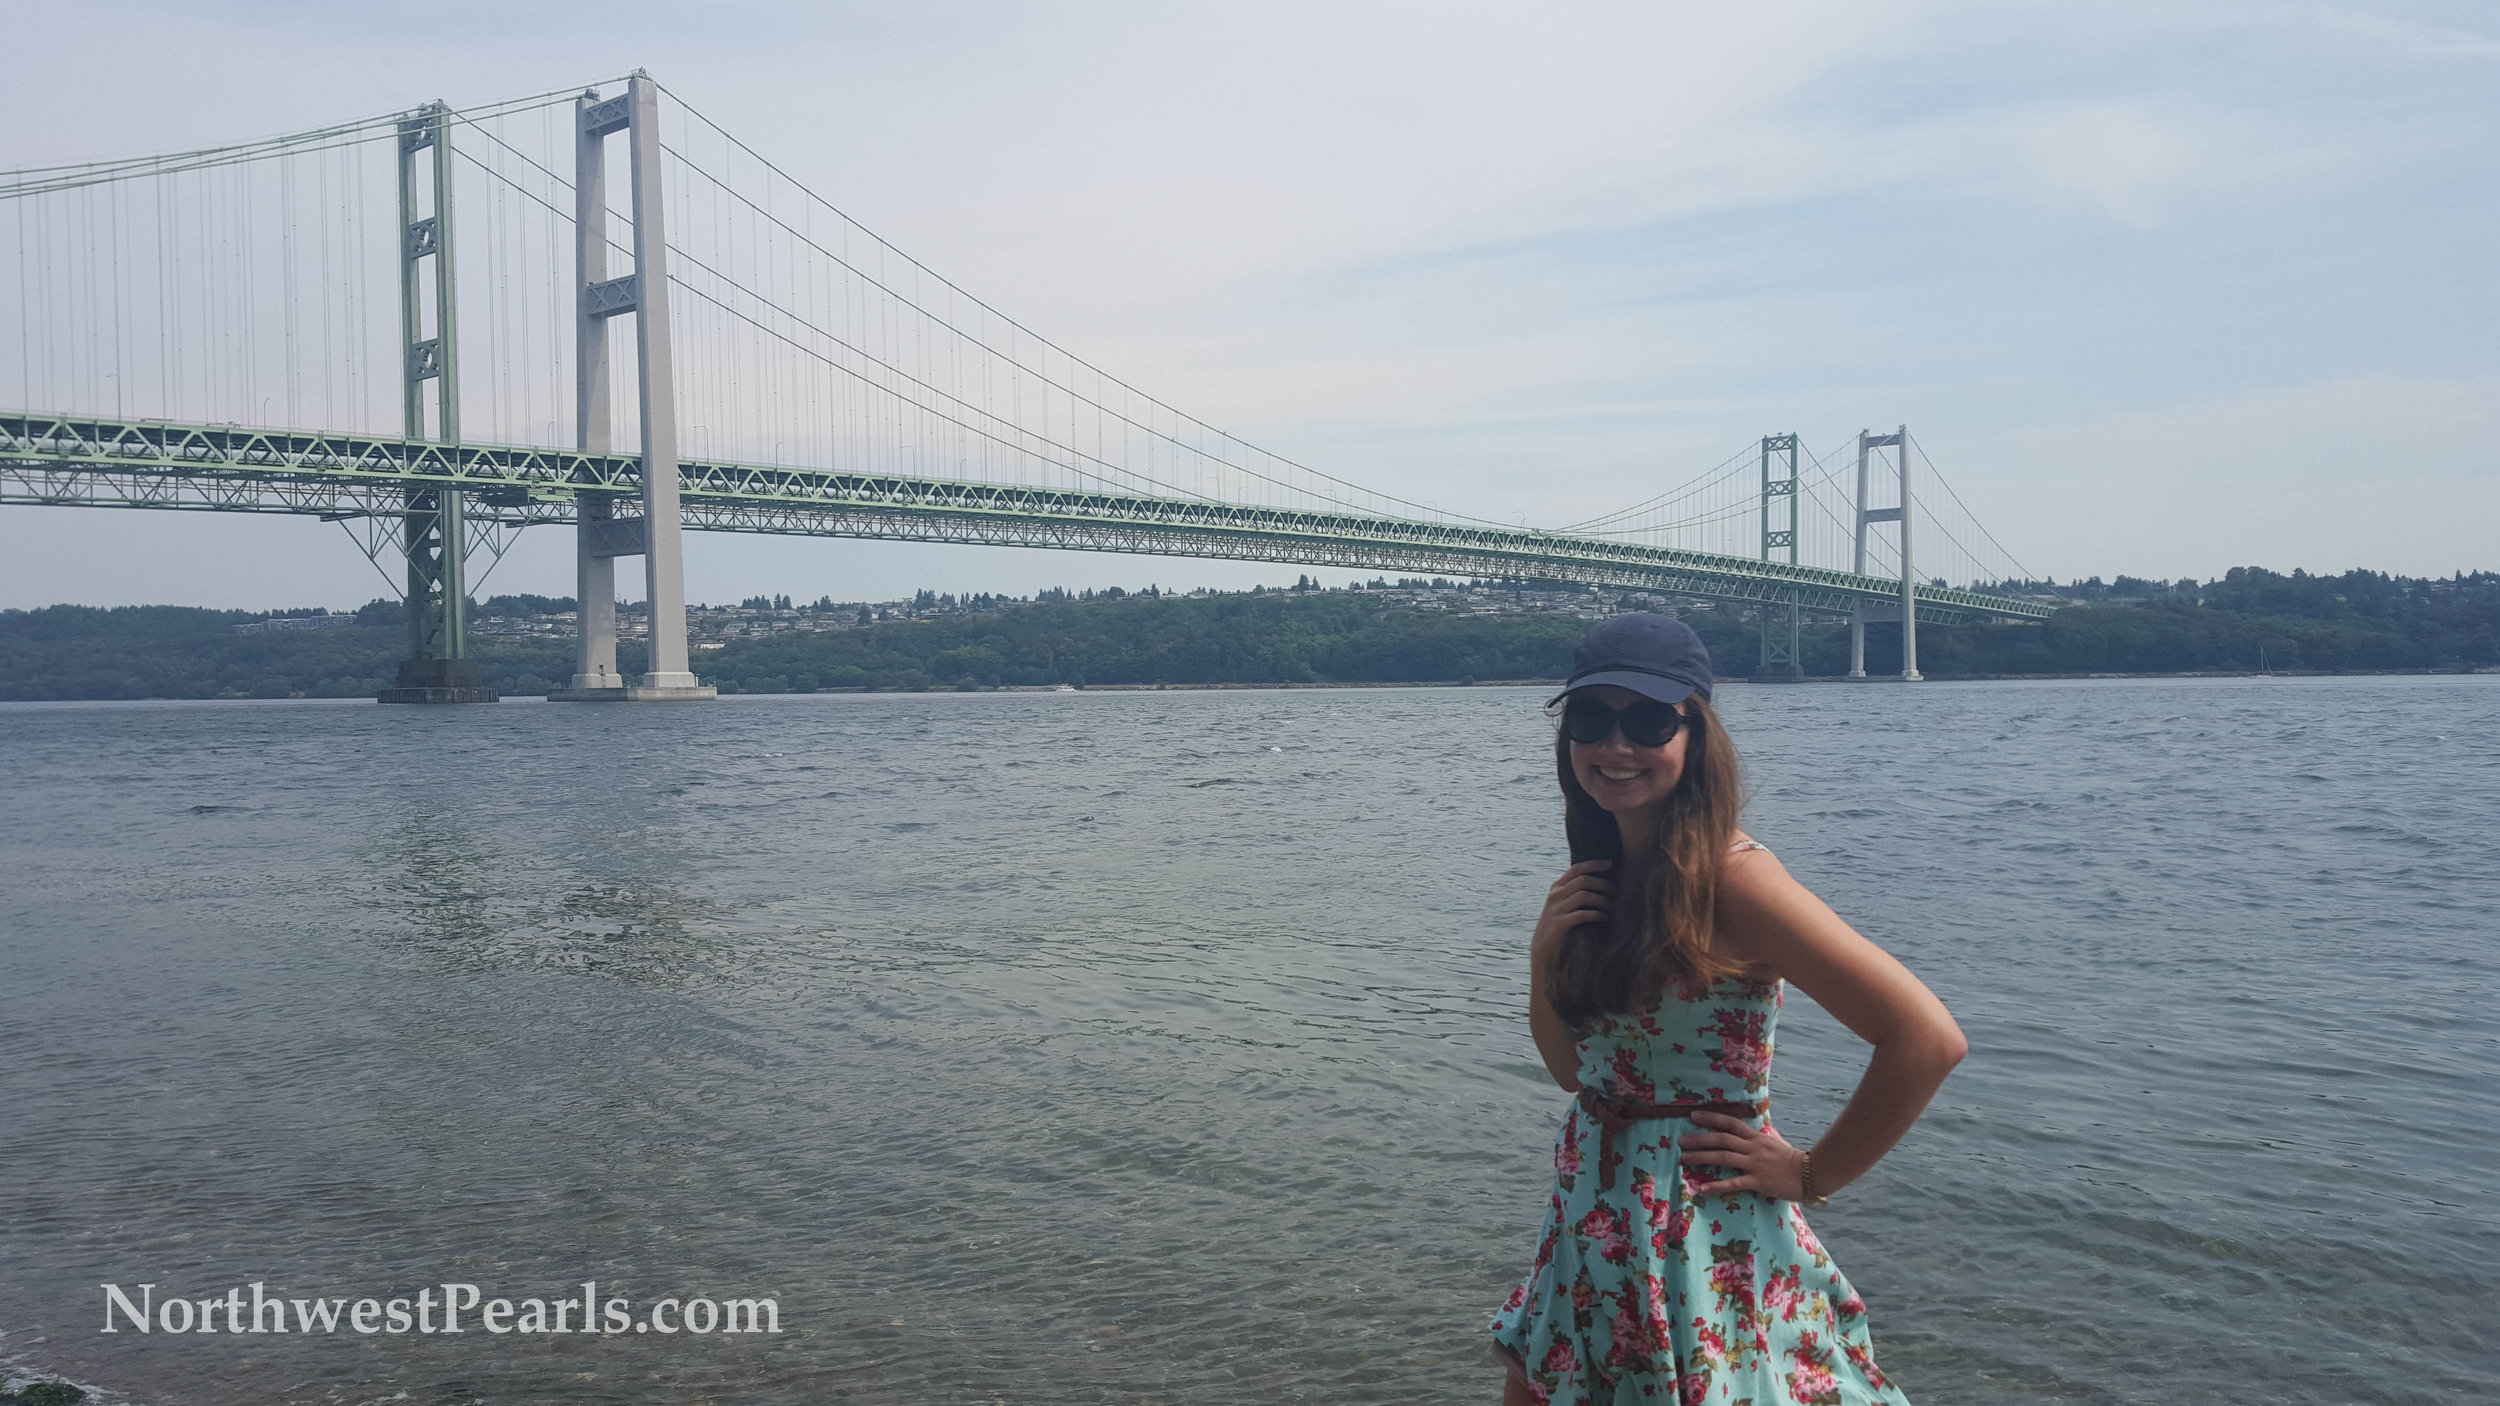 Northwest Pearls: Narrows Park and the Narrows Bridge